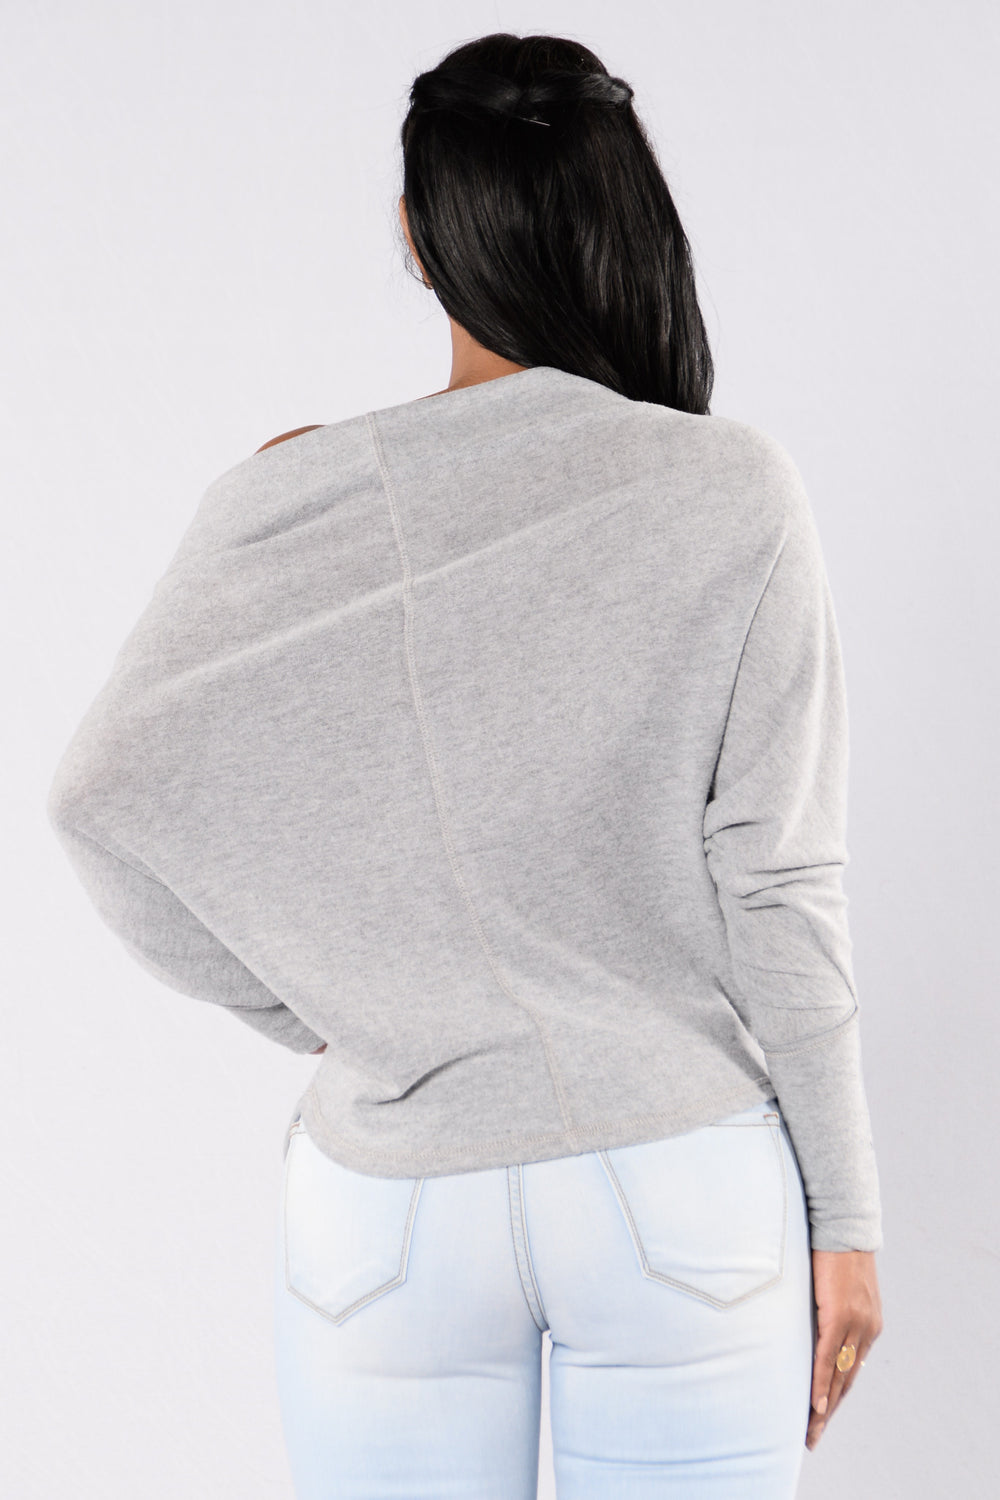 TLC Sweater - Grey